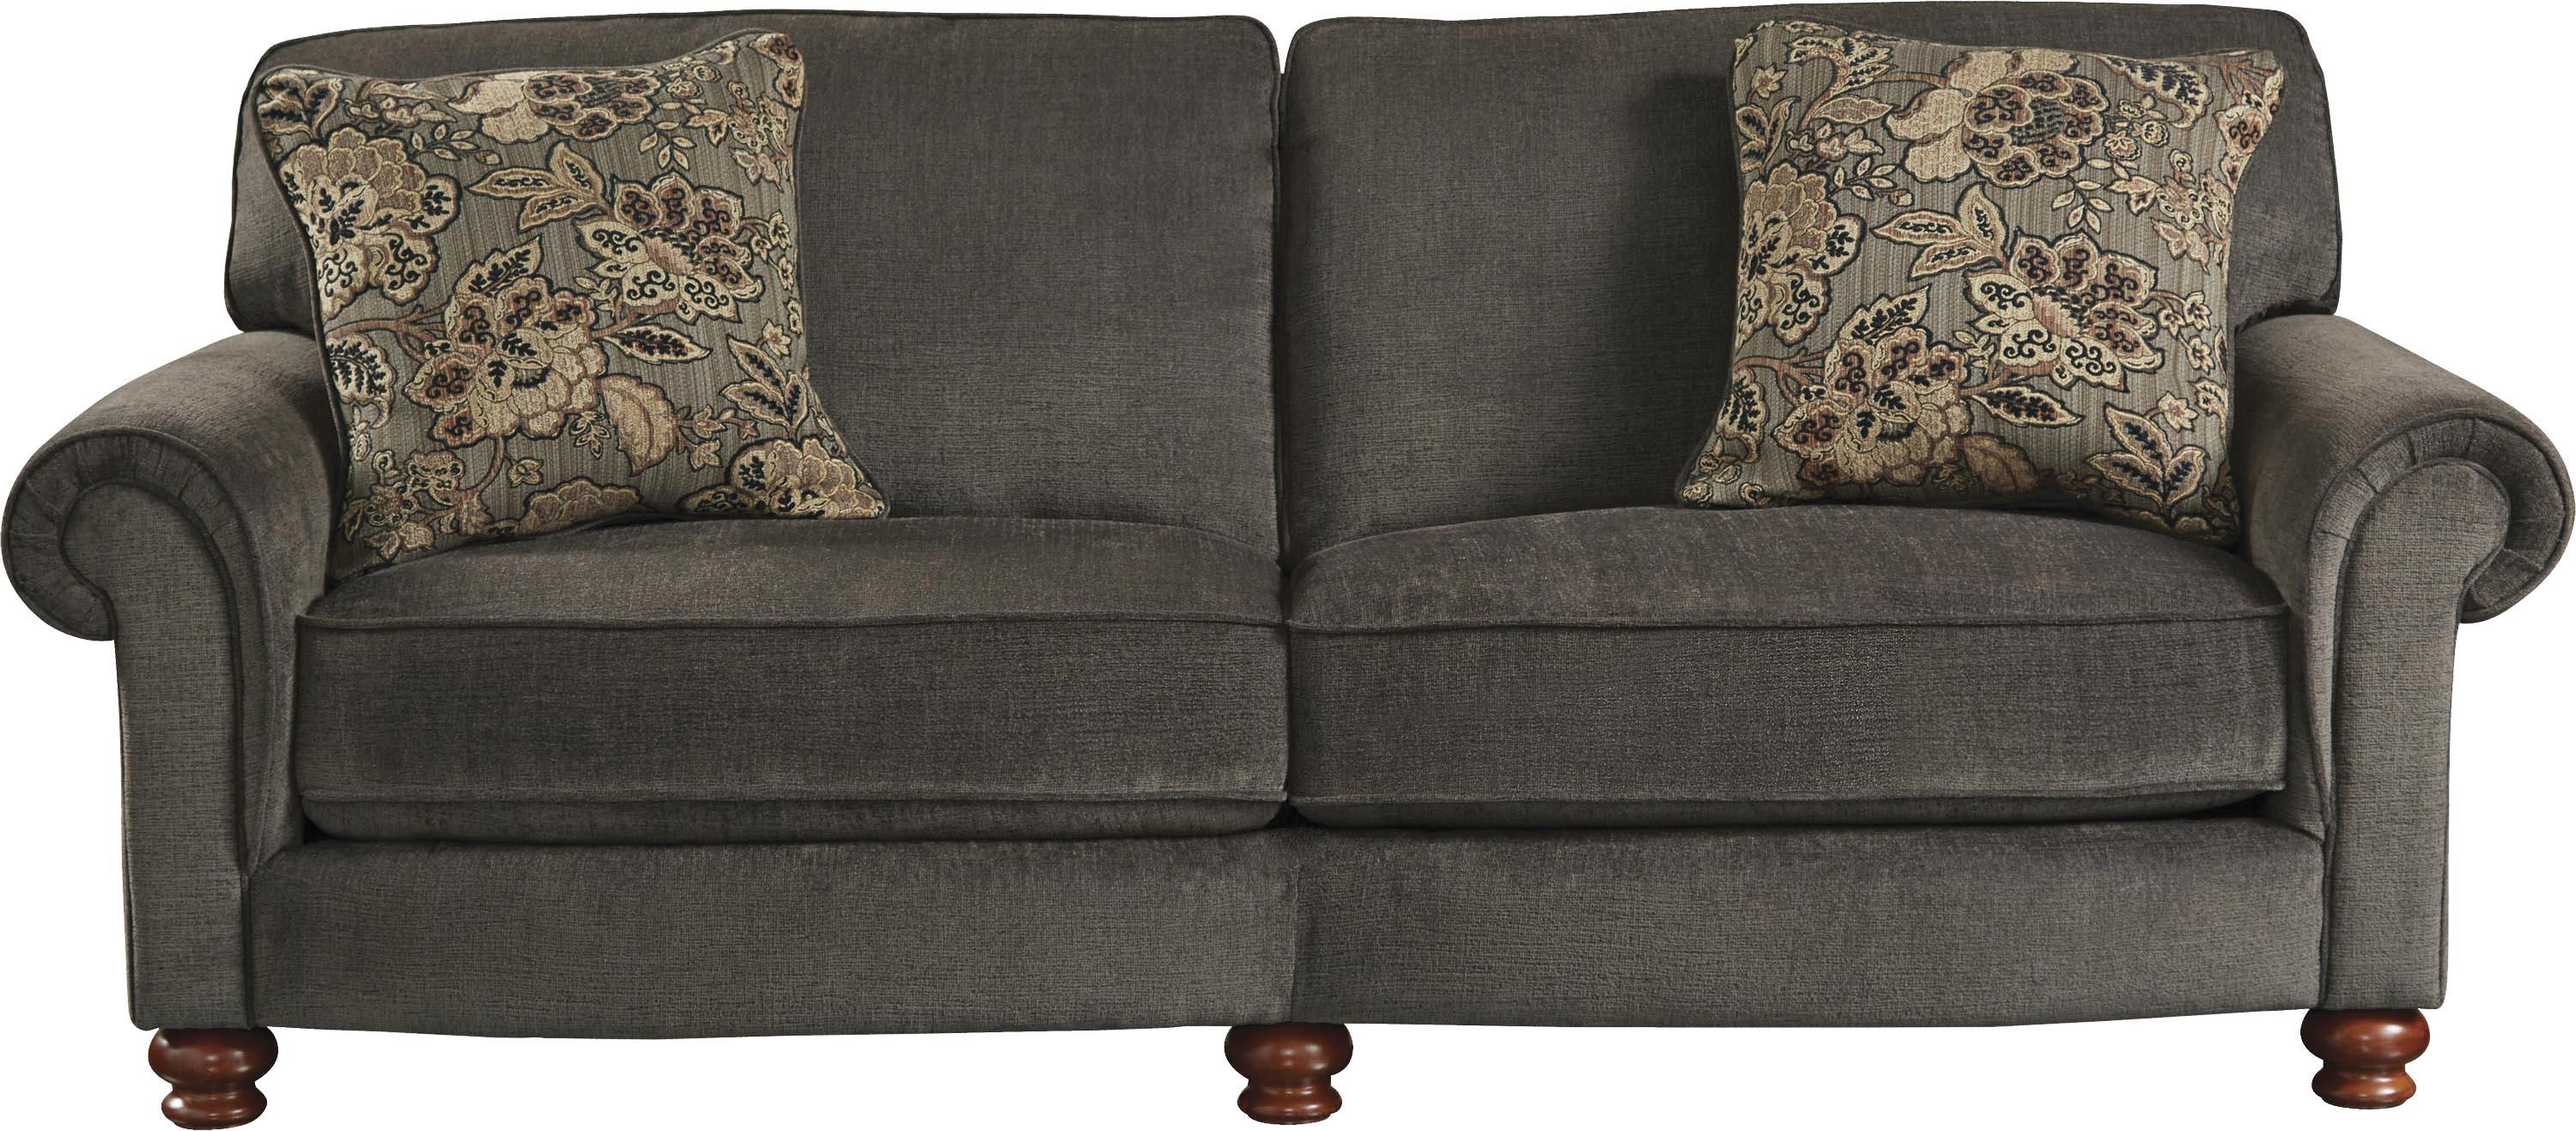 Jackson Furniture Downing Sofa  - Item Number: 4384-03-2906-88